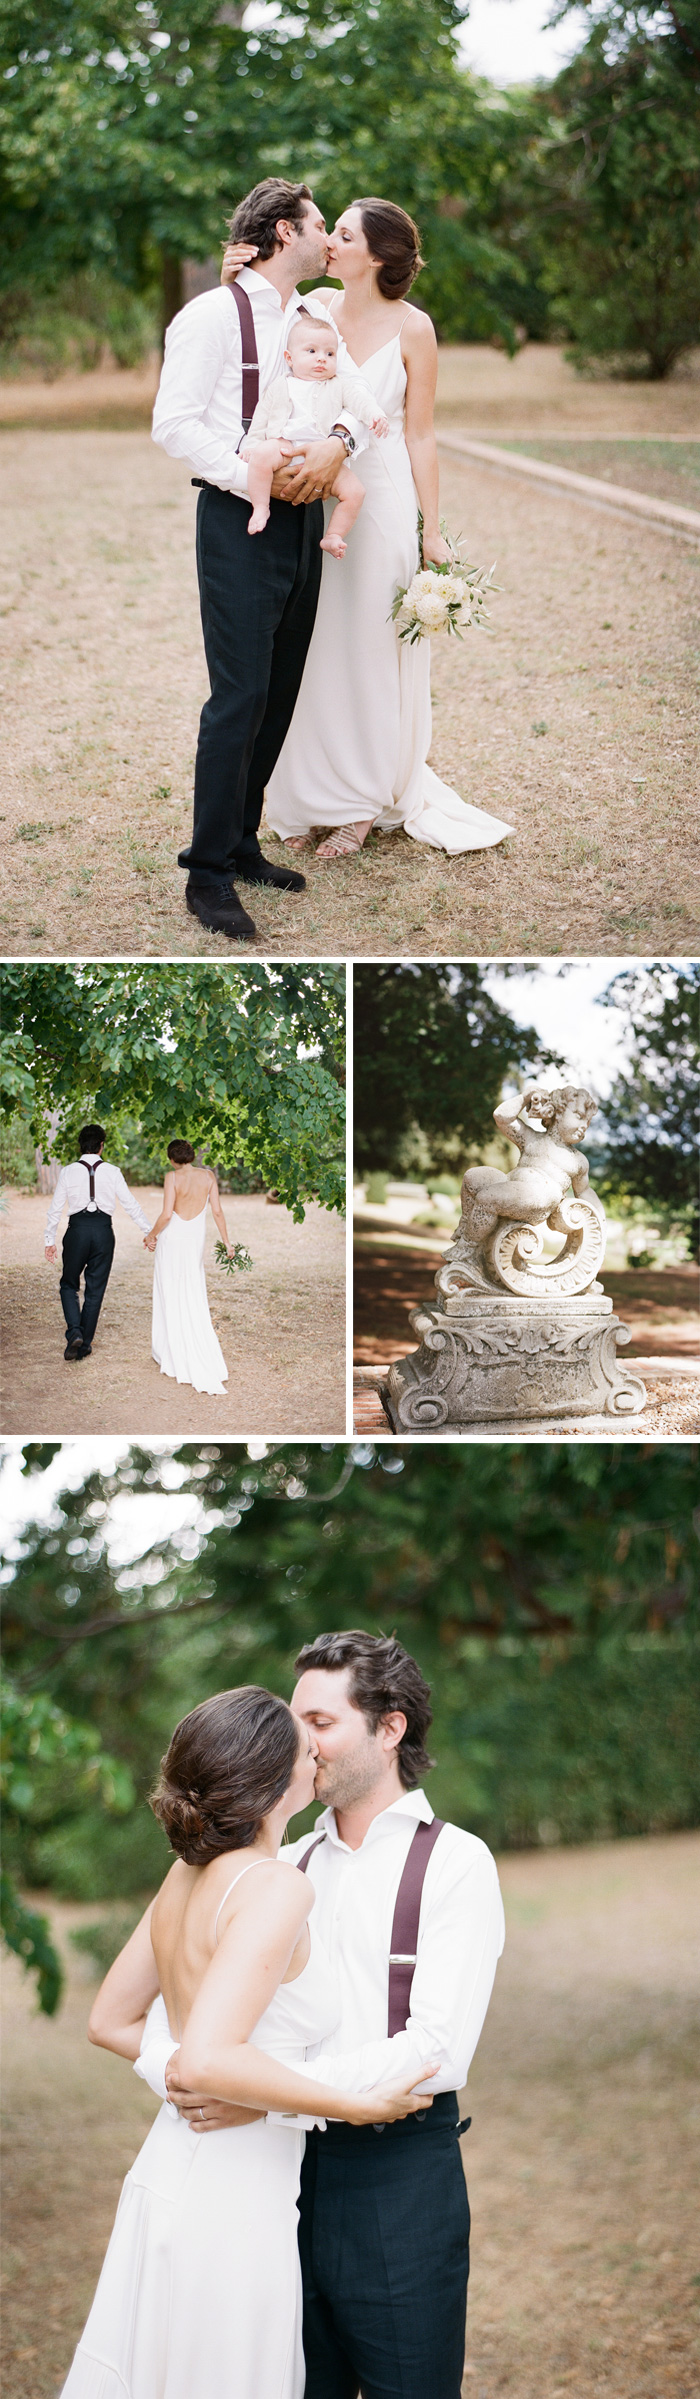 Bride and groom in love, kiss in the vineyard in Provence, France; Sylvie Gil Photography